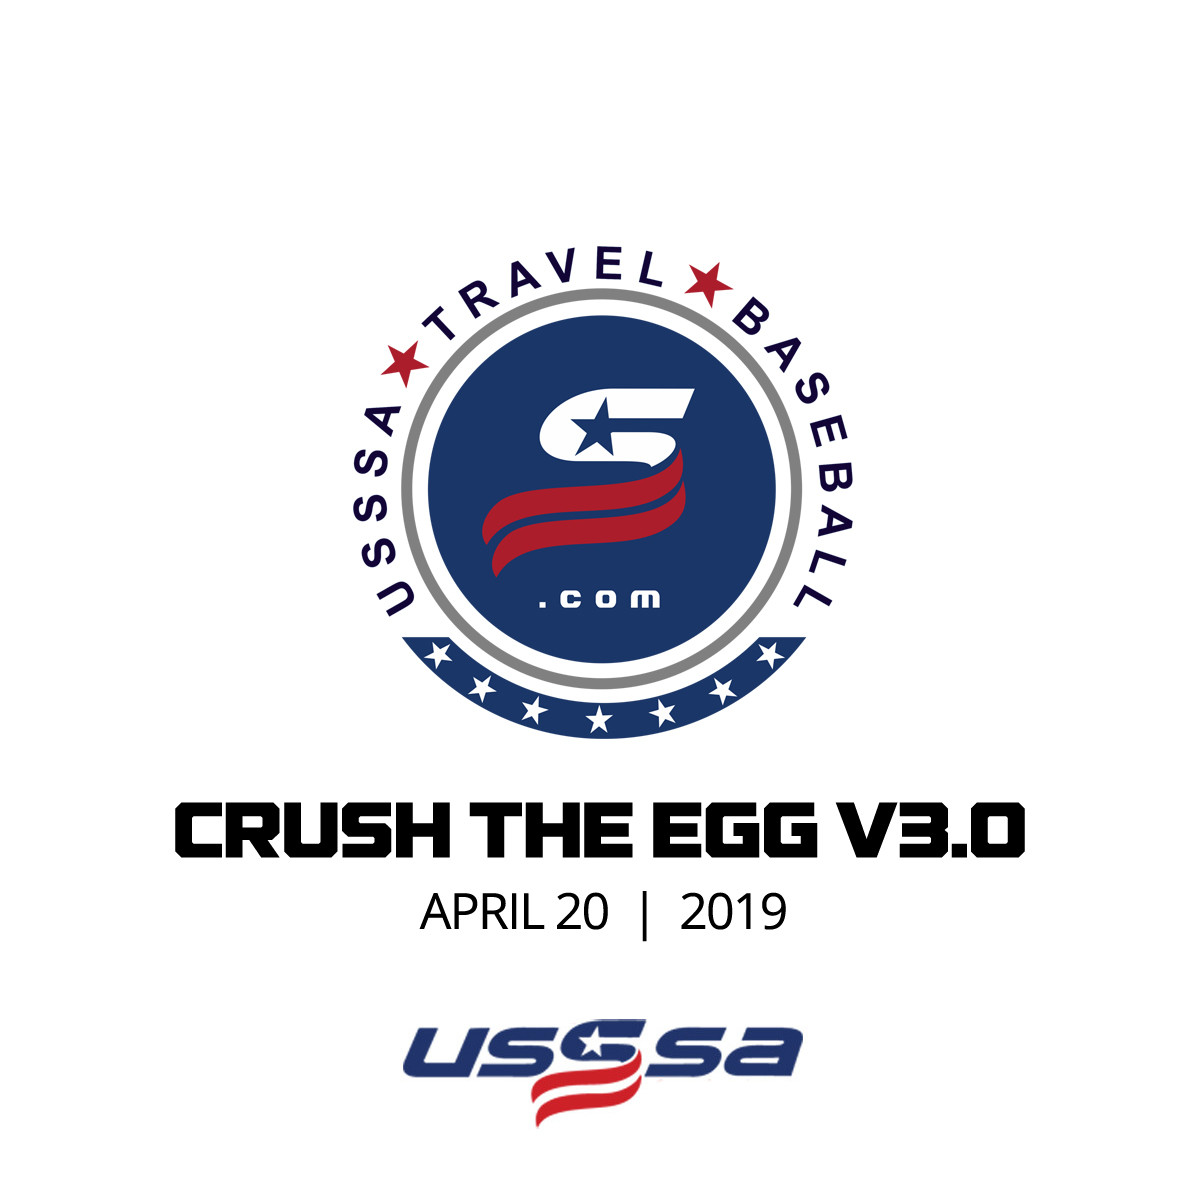 Upstate - Crush The Egg V3.0